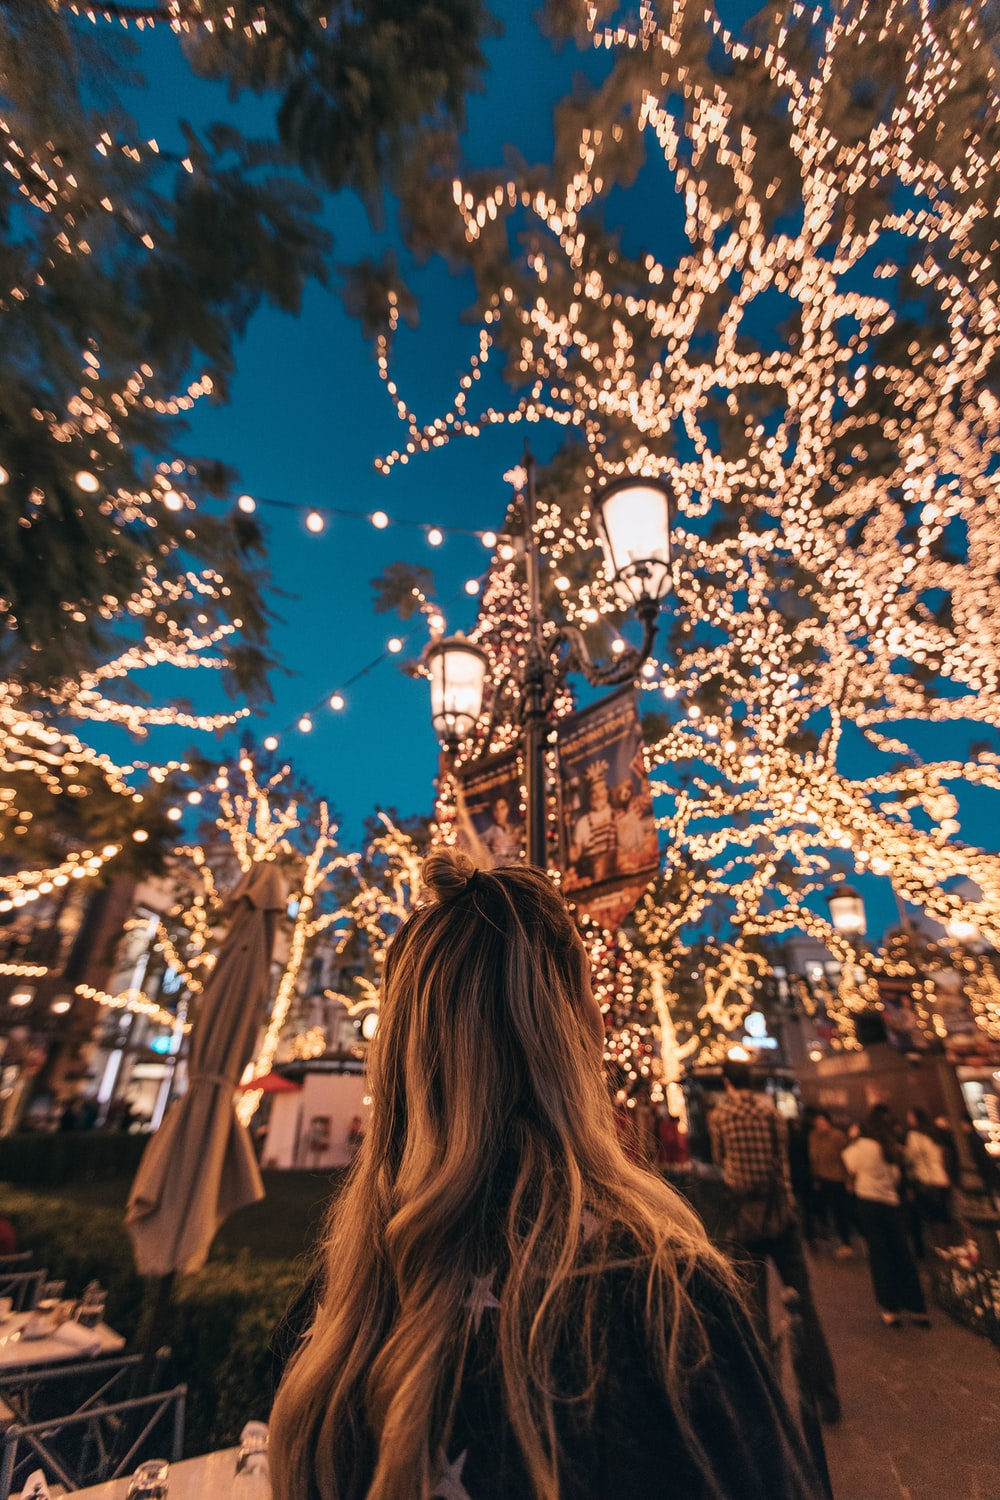 woman seeing string lights